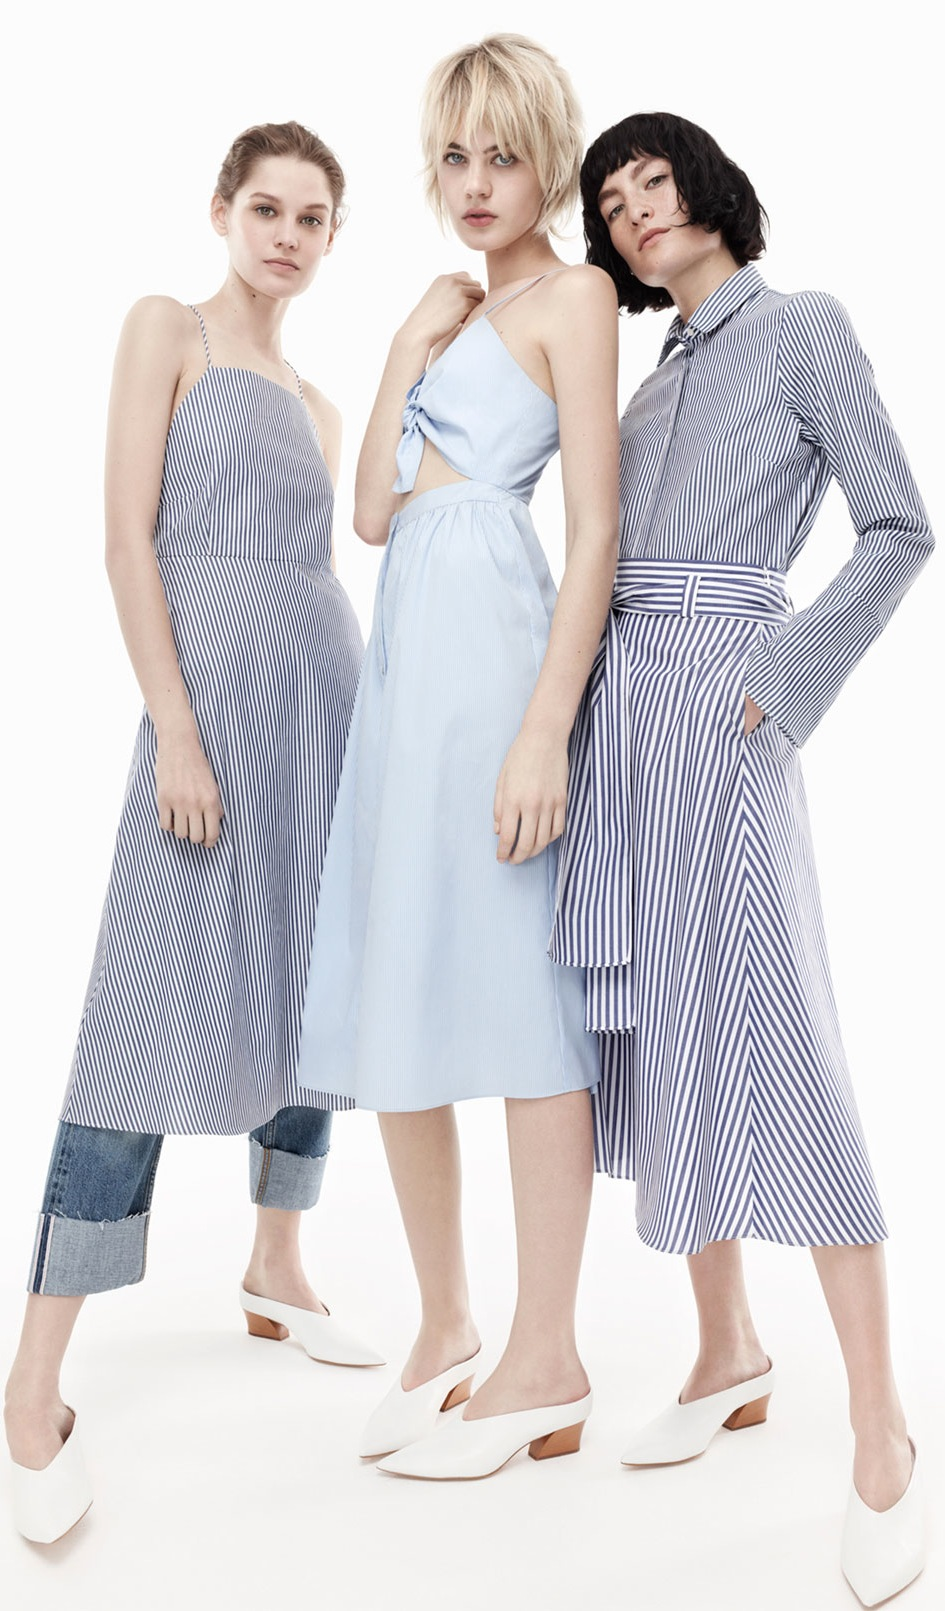 Looks from Zara's Resort 2016 collection.